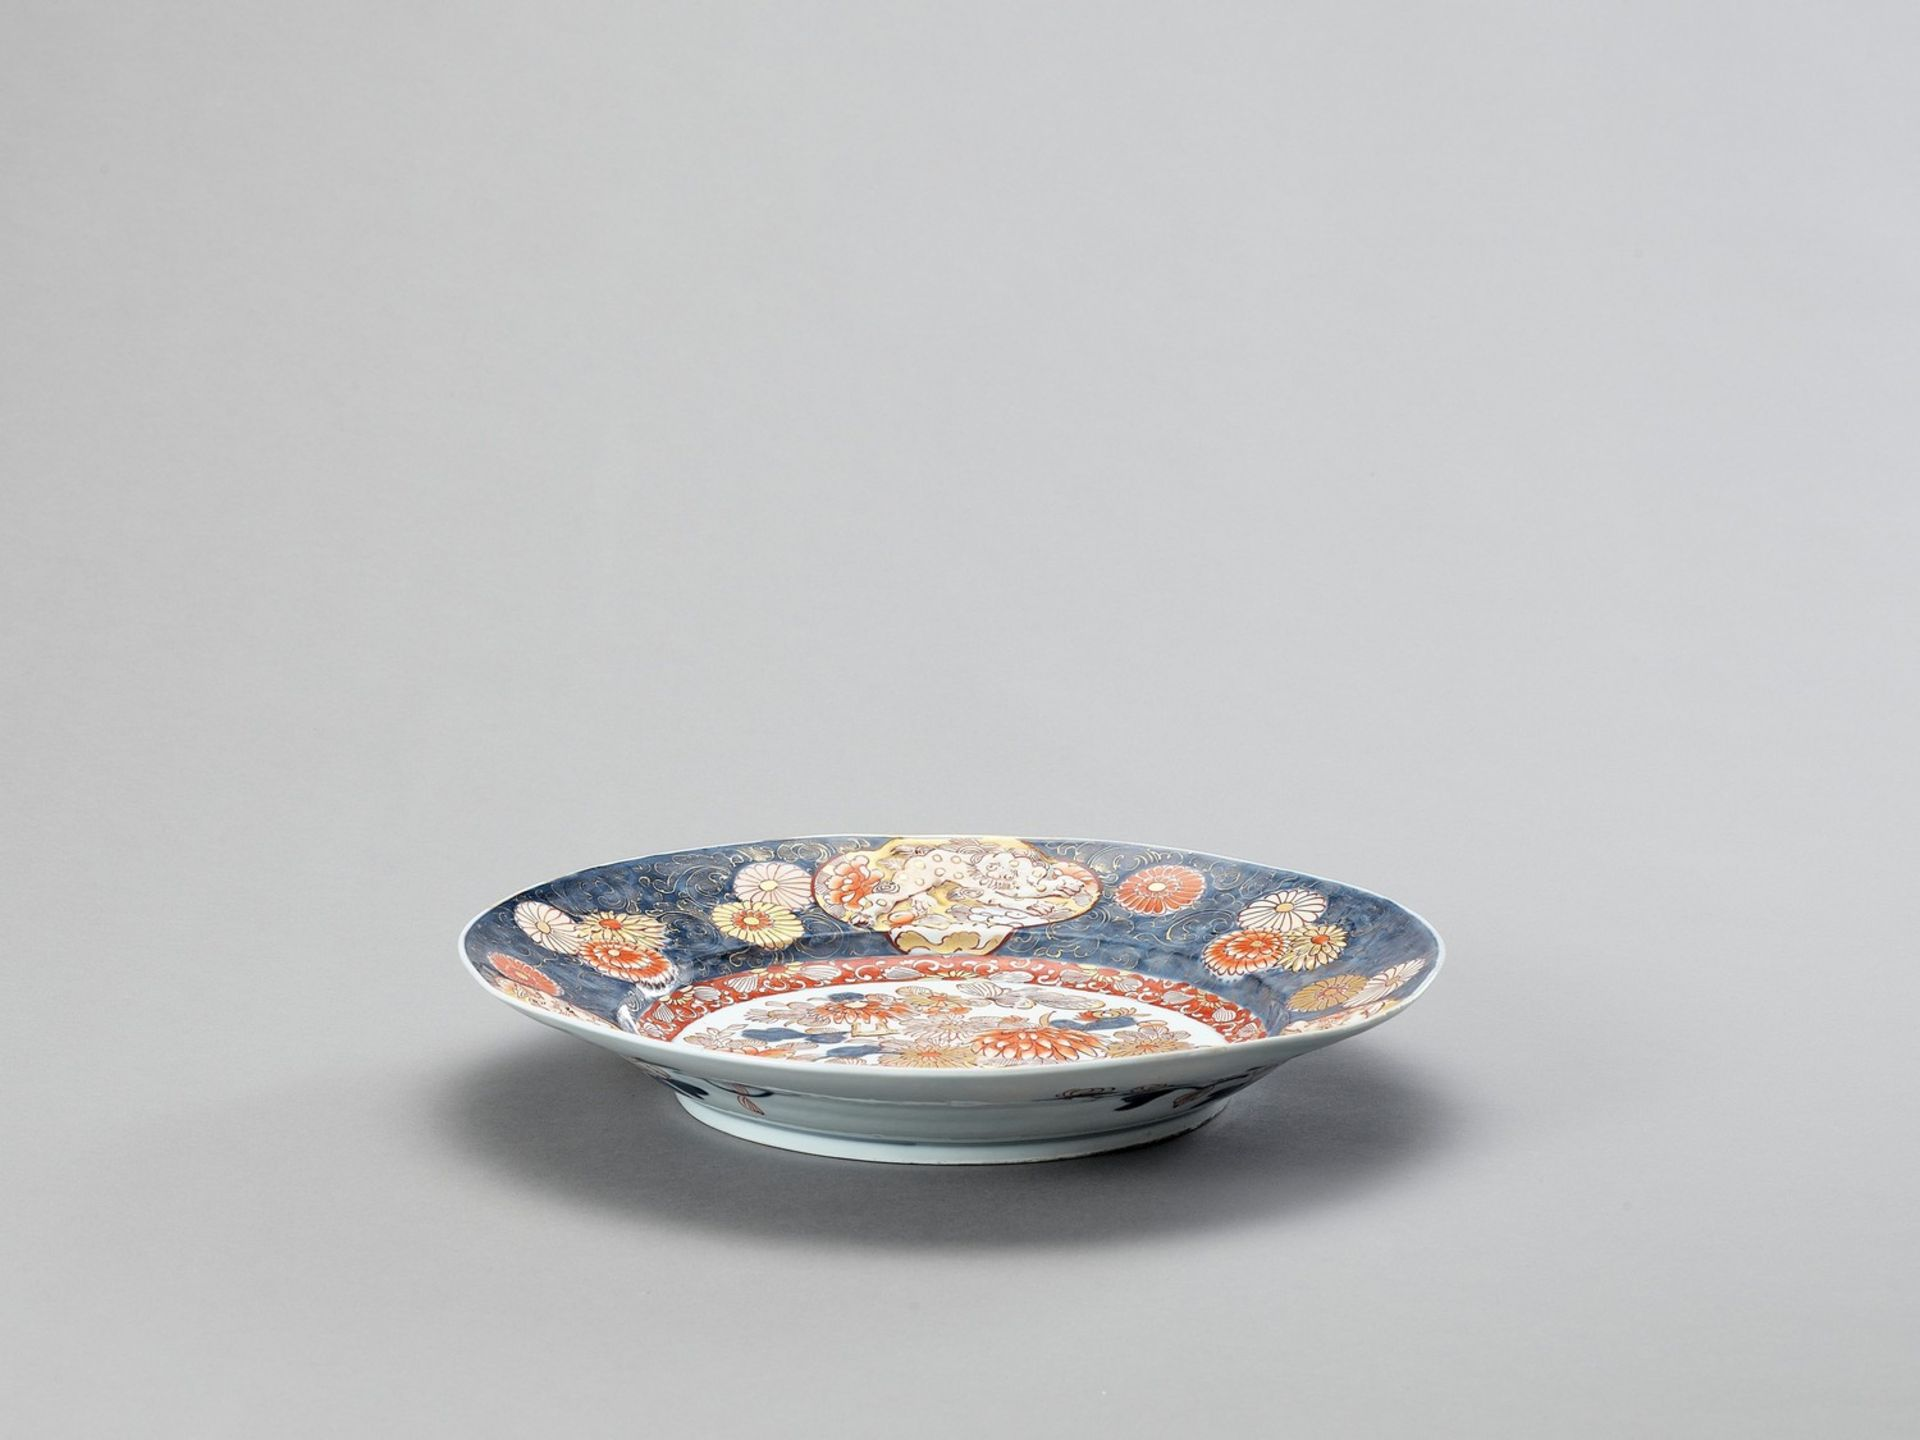 A LARGE IMARI PORCELAIN CHARGER - Image 4 of 4